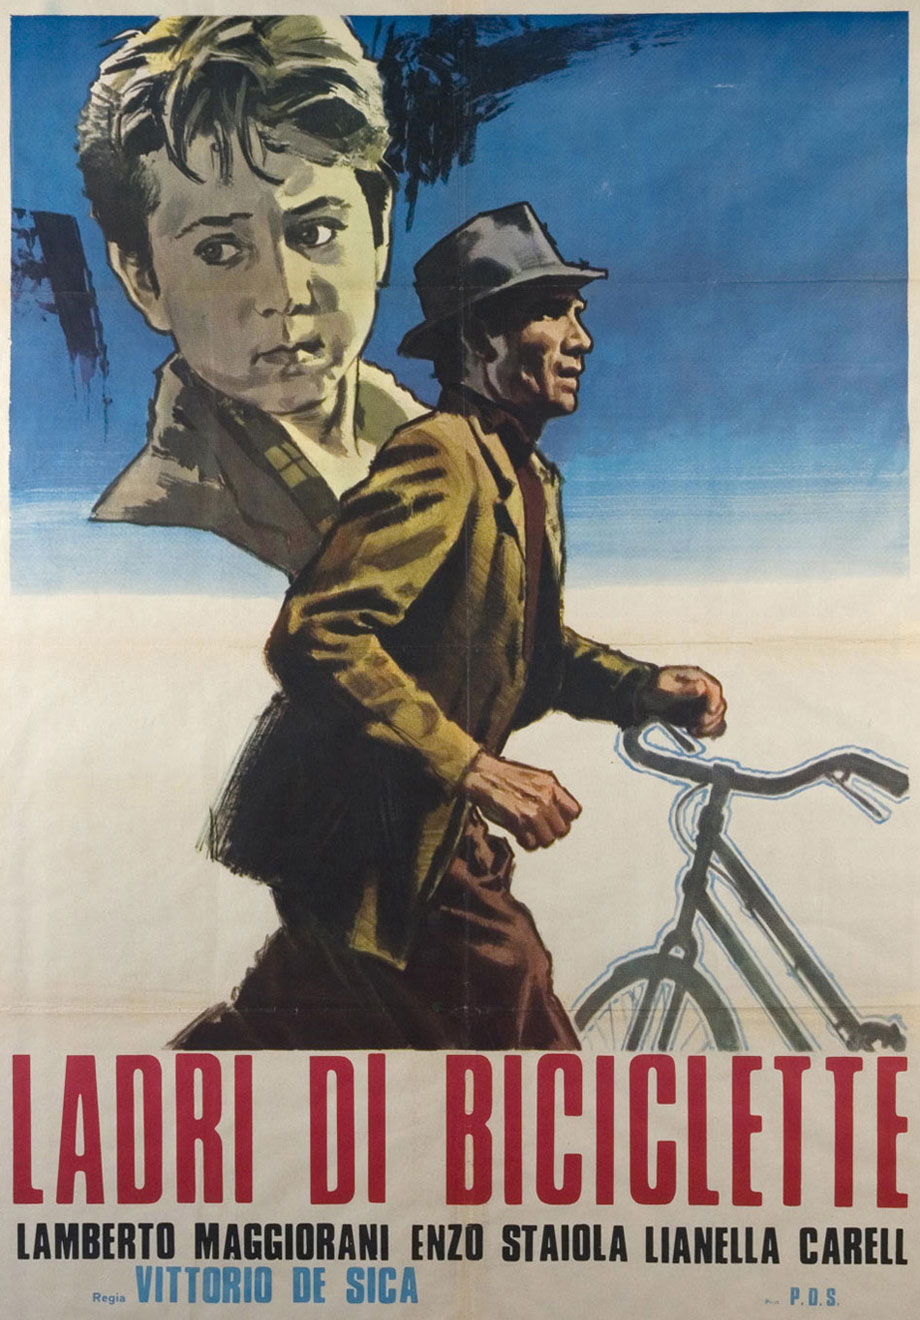 a film analysis of the movie the bicycle thief directed by vittorio de sica A critical analysis of the movie the bicycle thief directed by vittorio de sica 1,599 words 4 pages an analysis of the neorealism in the bicycle thief by cesare zavattini 753 words 2 pages an analysis of the theme of loss of faith in the bicycle thief 1,599 words 4 pages an analysis of the film, the bicycle thief 1,618 words 4 pages an analysis of the bicycle thief.